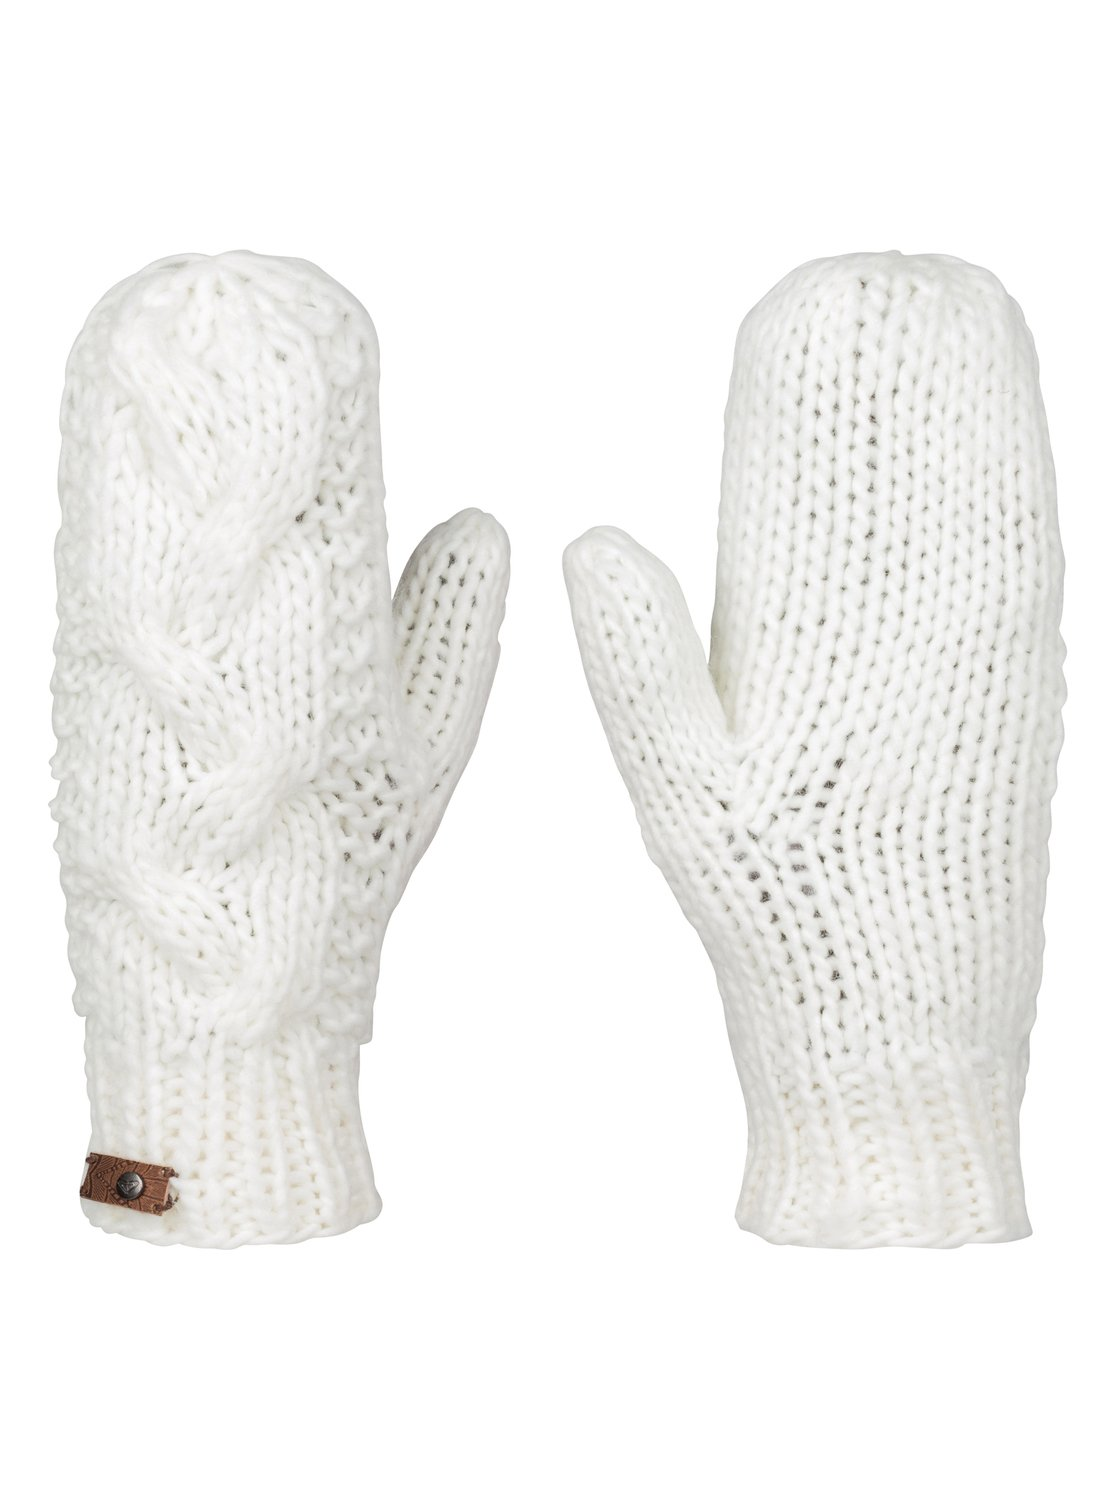 There's nothing like a pair of twined mittens to keep the hands warm on a cold day. The inspiration for this pair came from a cake of Z-twist yarn—white on the .